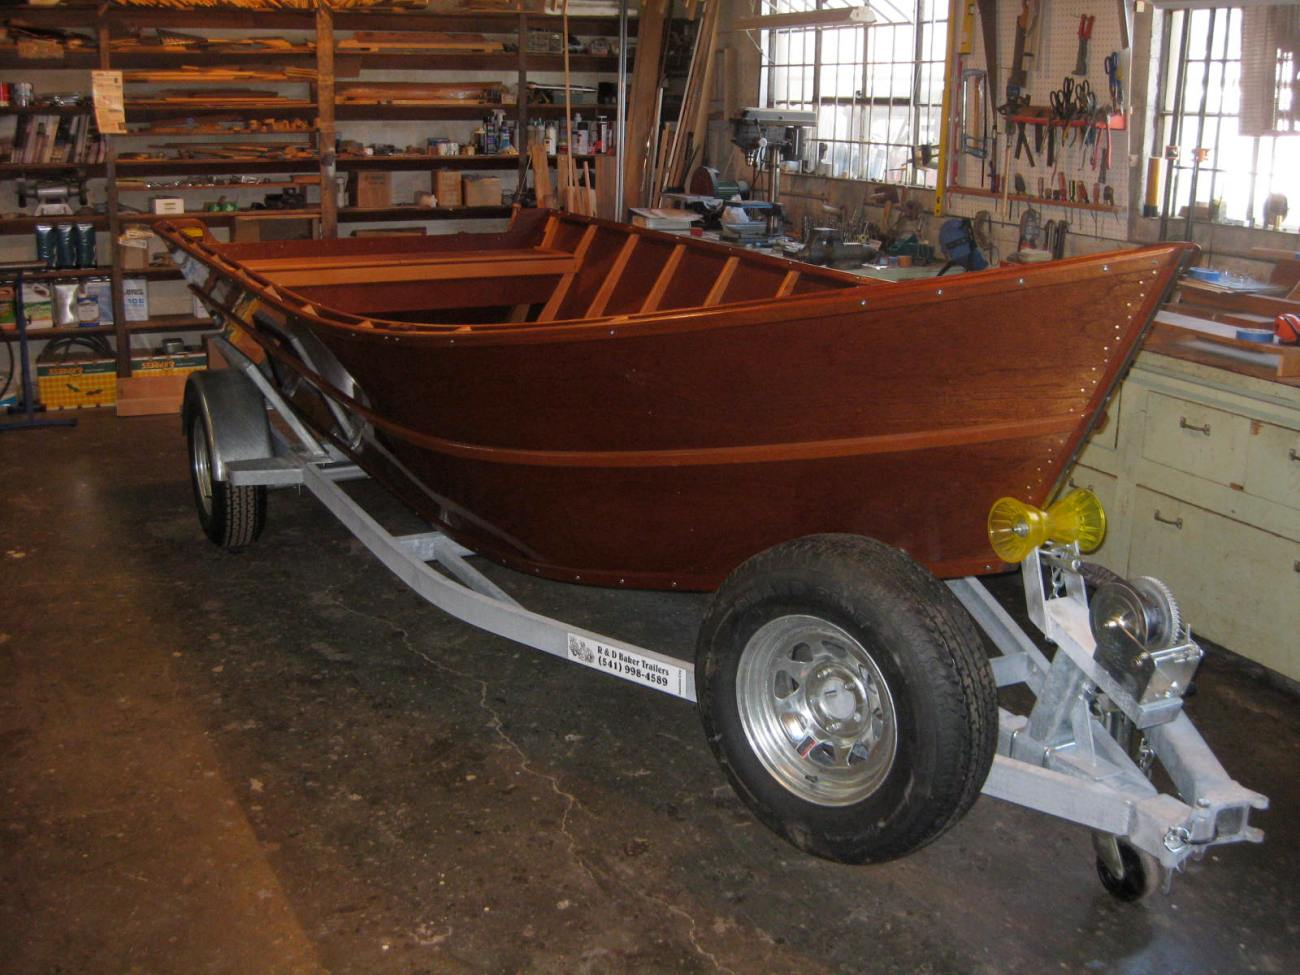 Willamette River Skiff Completely Built